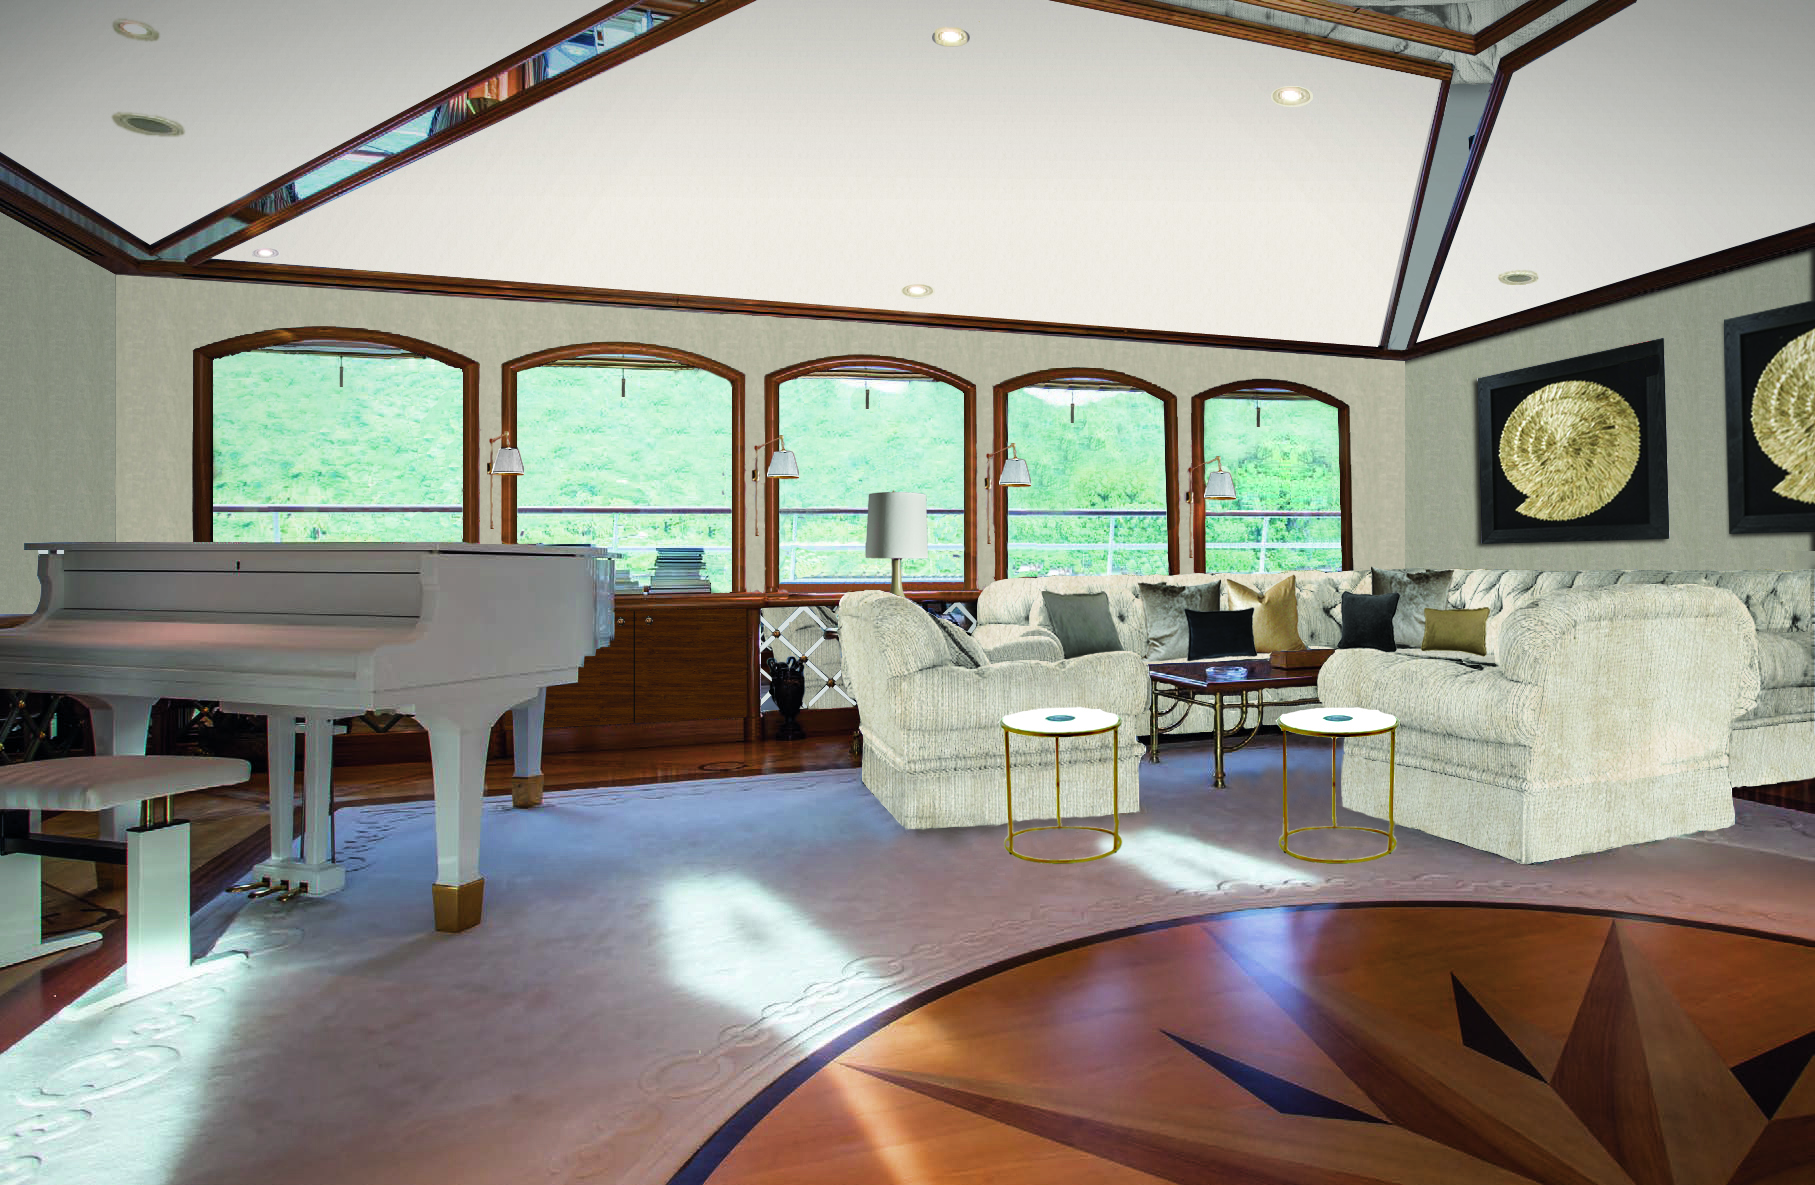 Saloon With Grand Piano